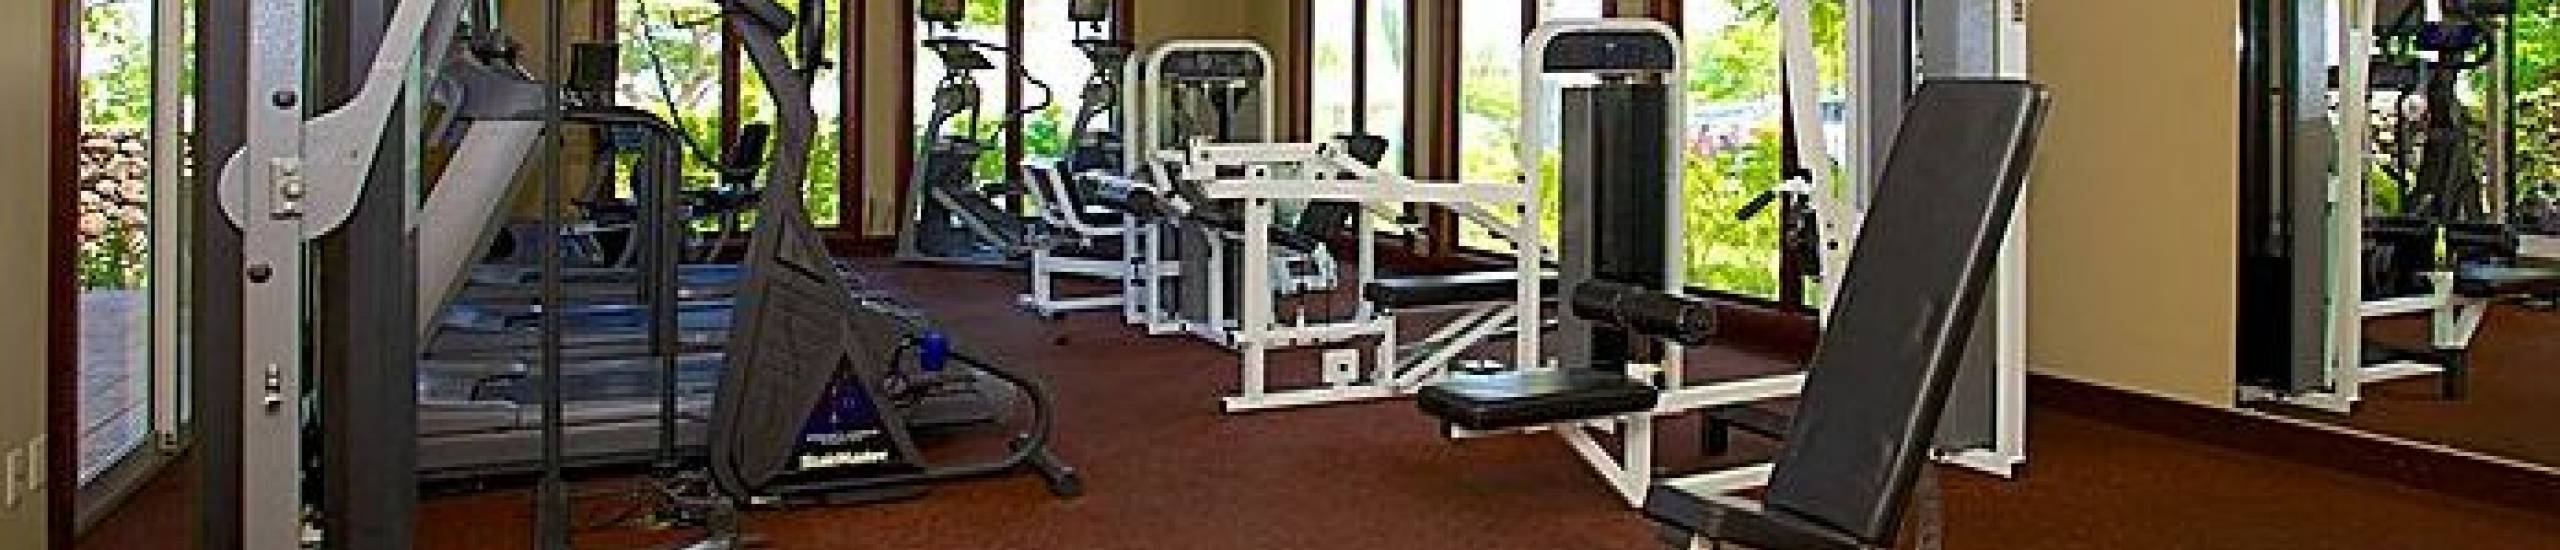 Wai'ula'ula Fitness Room